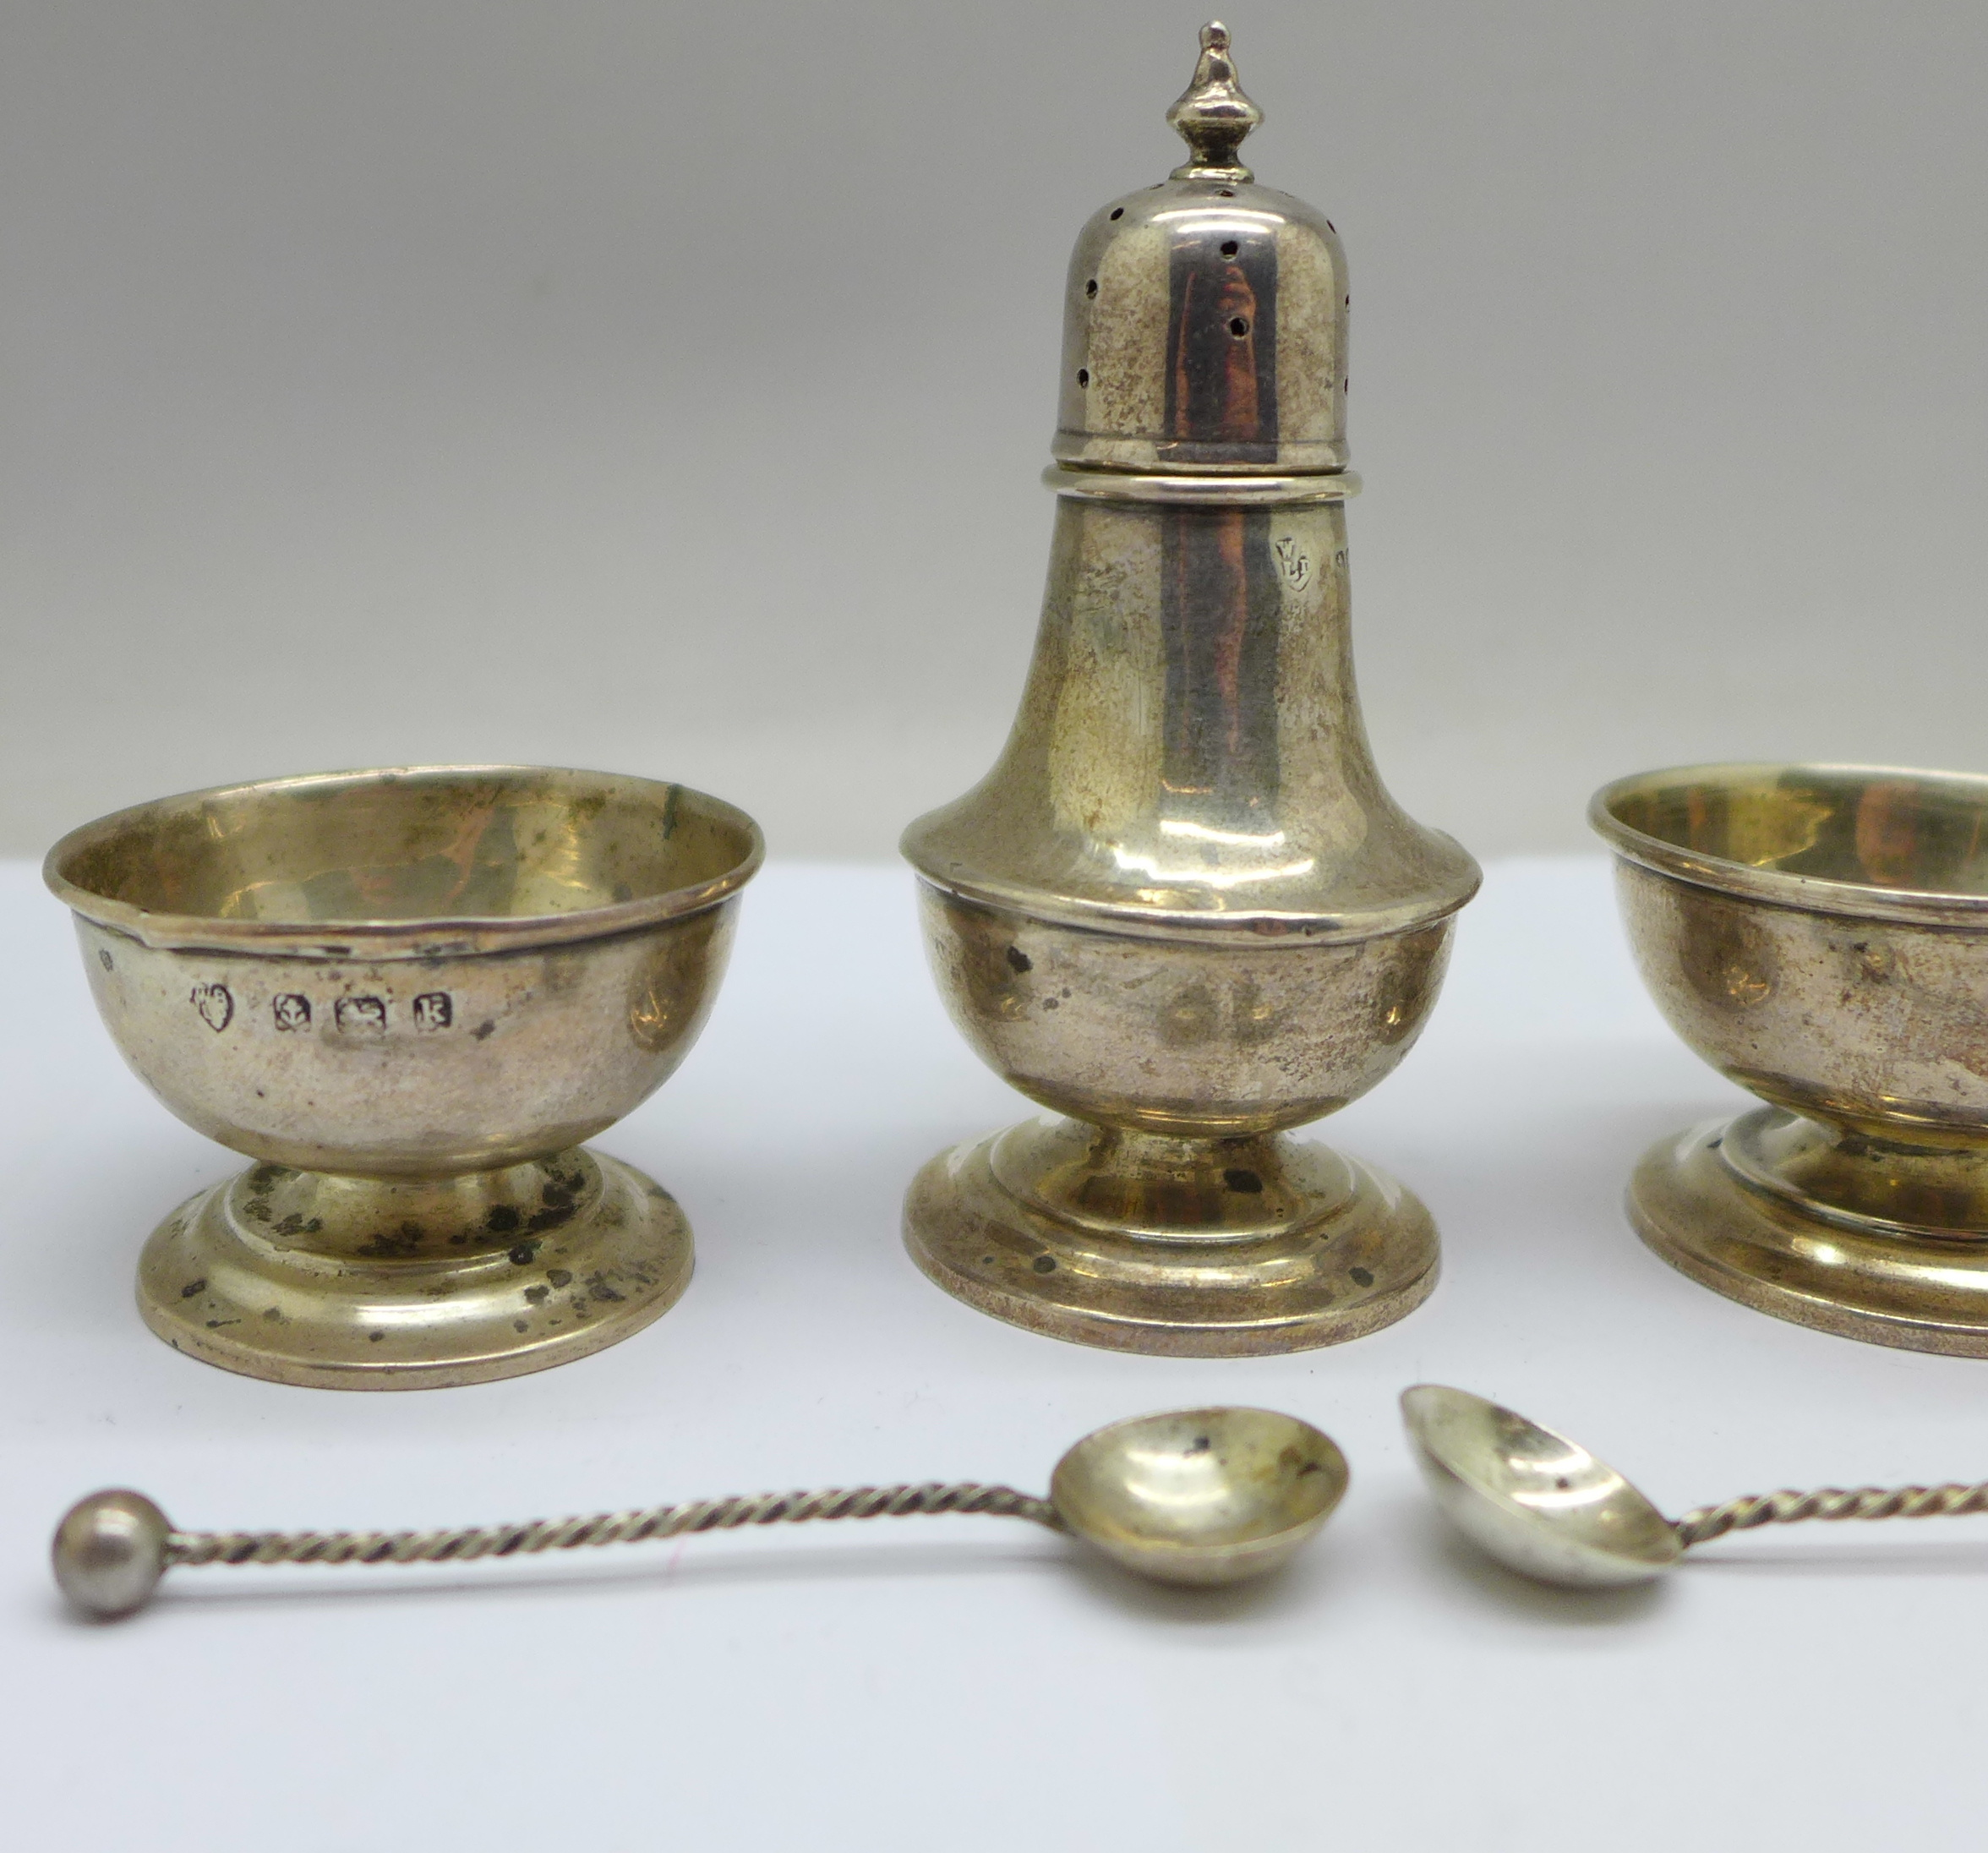 A pair of silver salts, one a/f, spoons and a pepper, 36g - Image 2 of 5